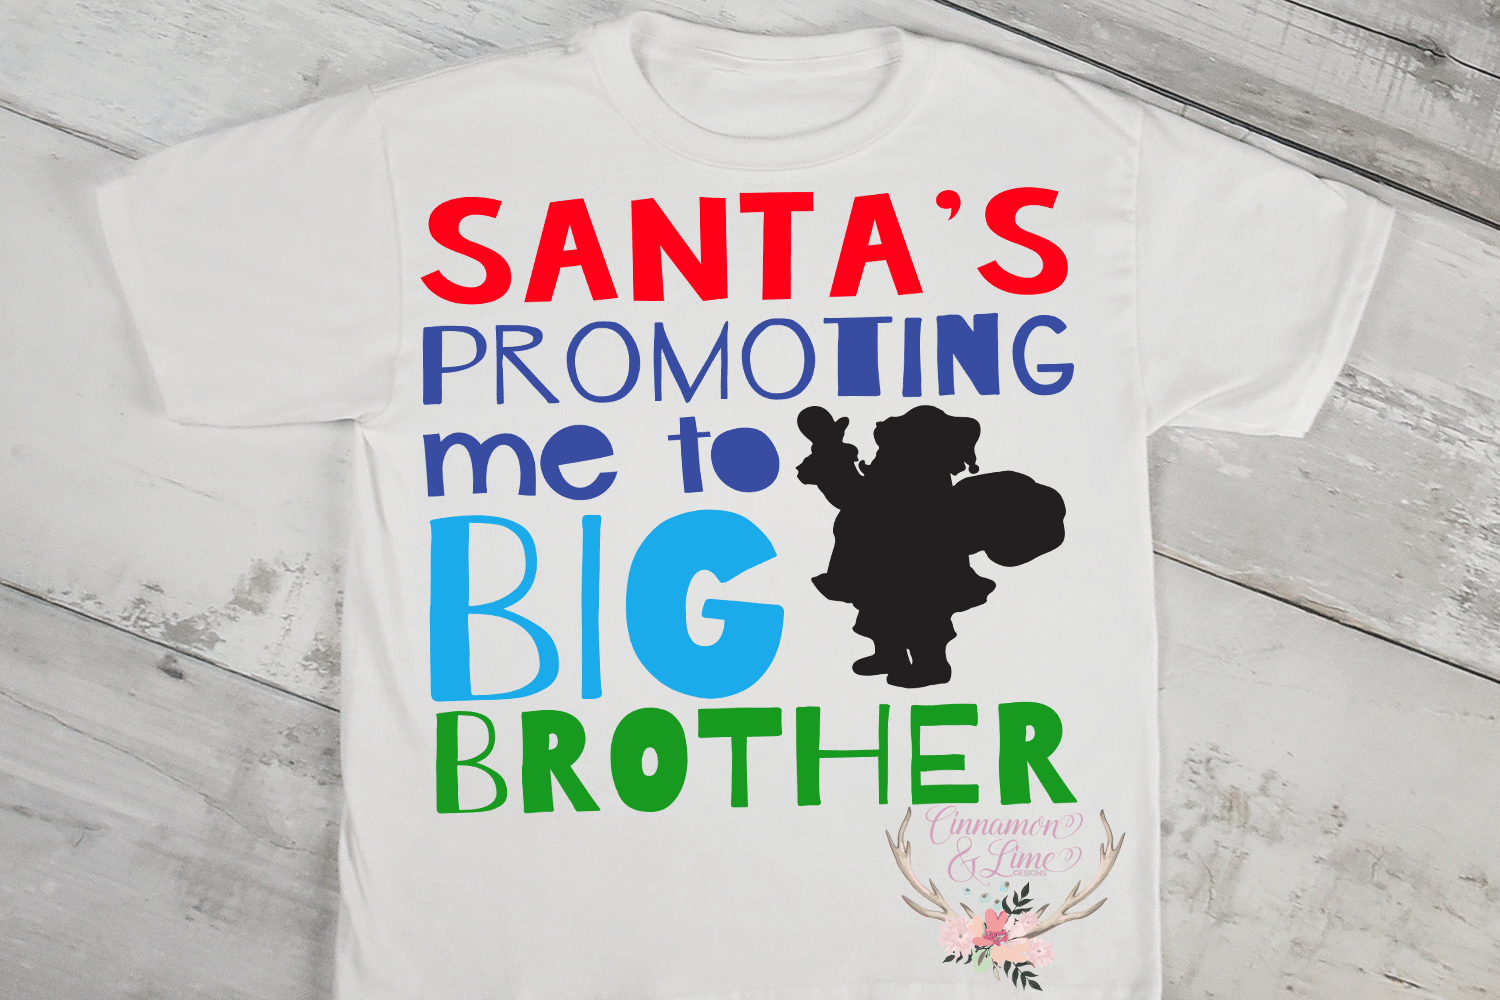 Christmas SVG - Santa's Promoting me to Big Brother example image 2